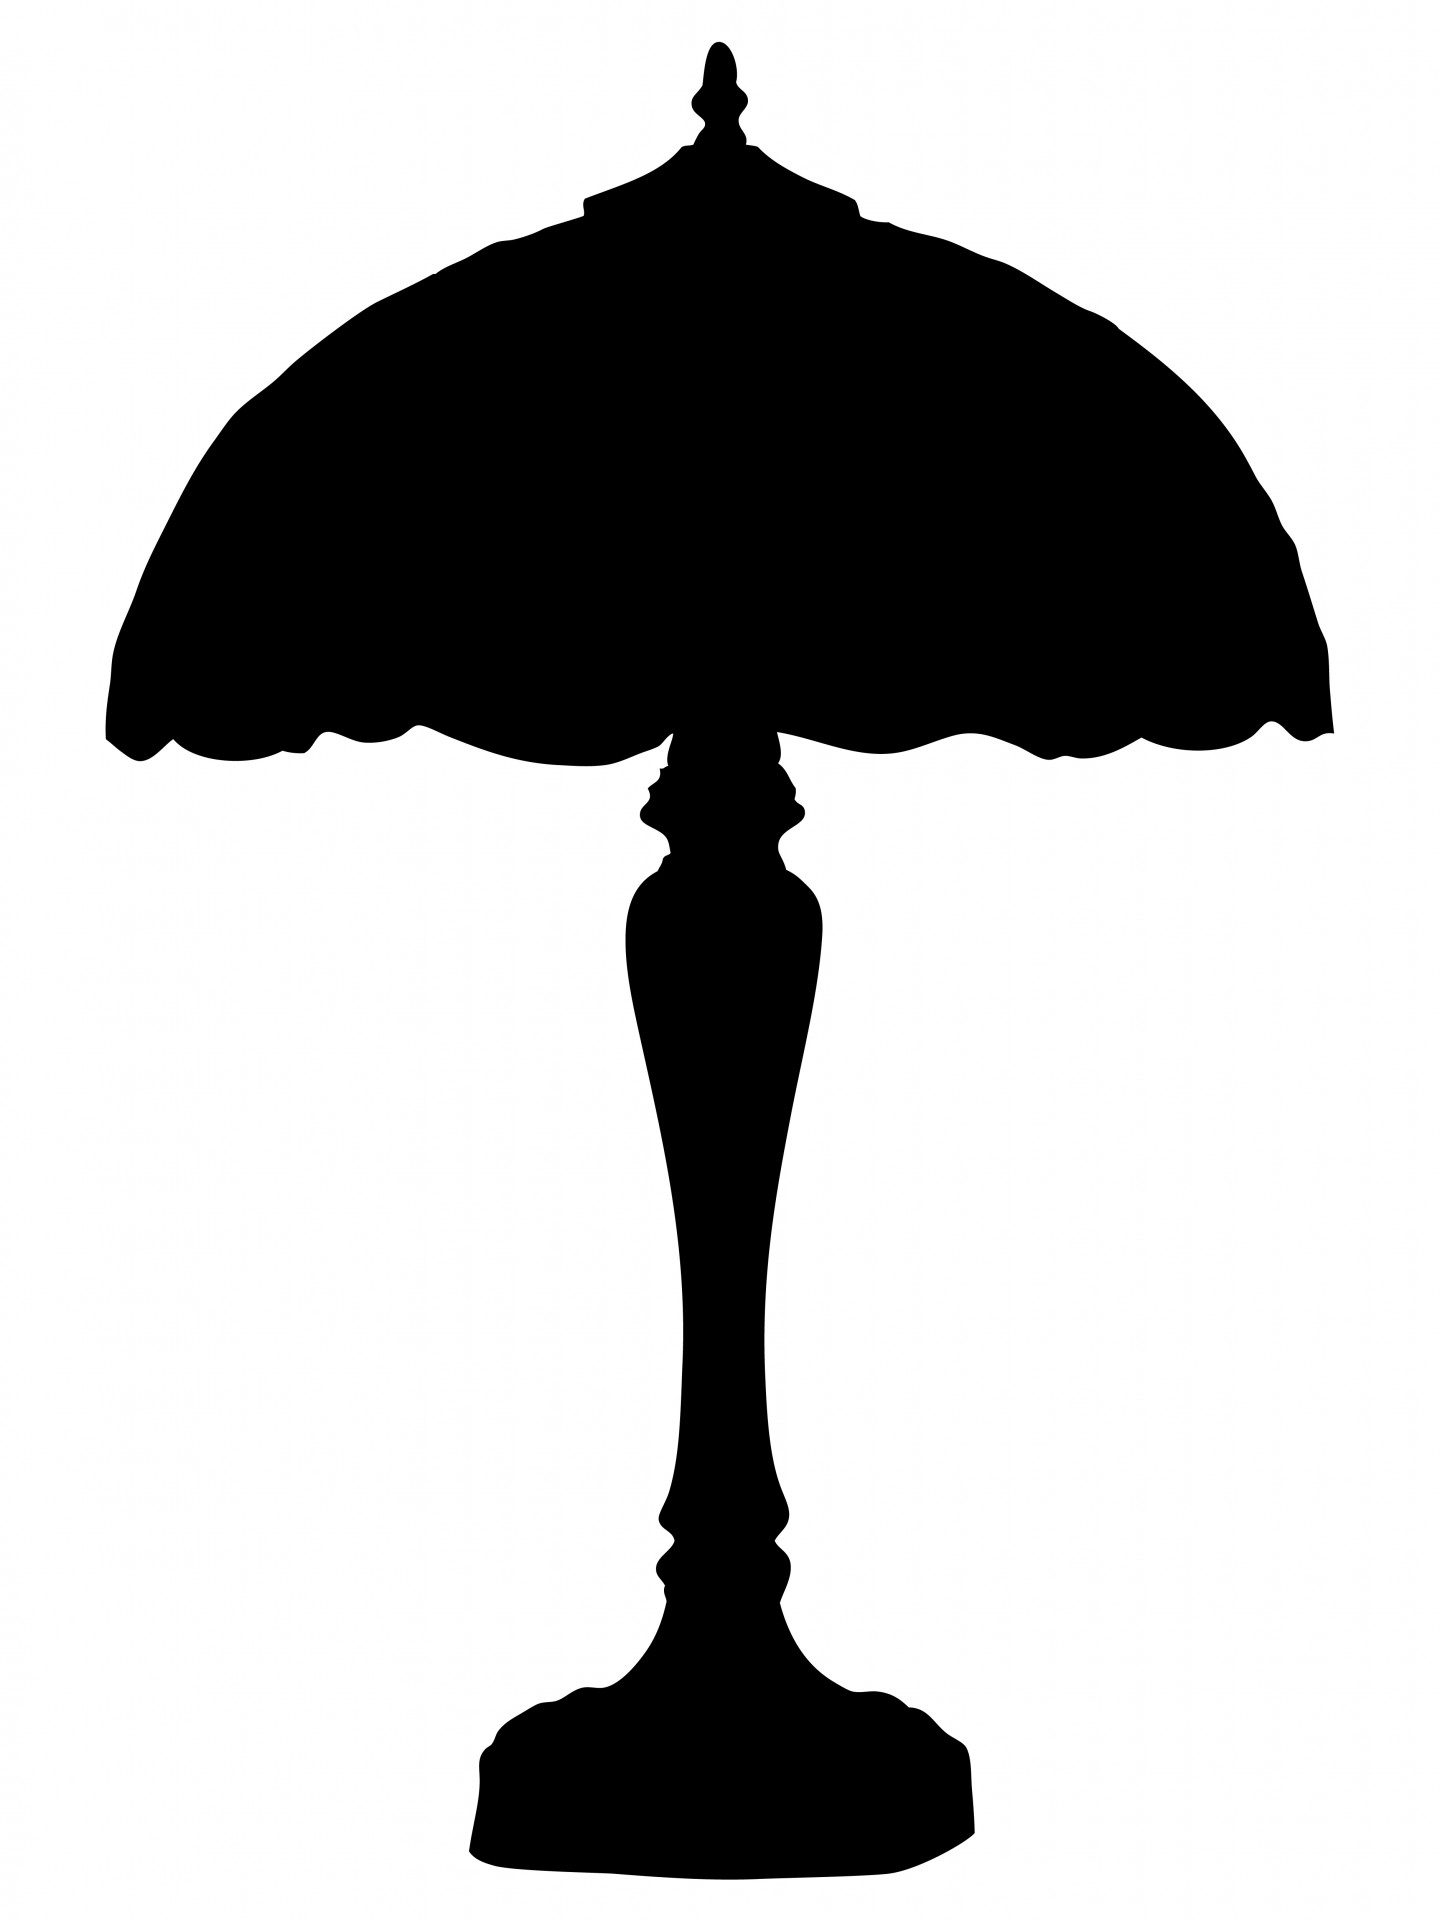 1440x1920 Lamp And Shade Silhouette Free Stock Photo